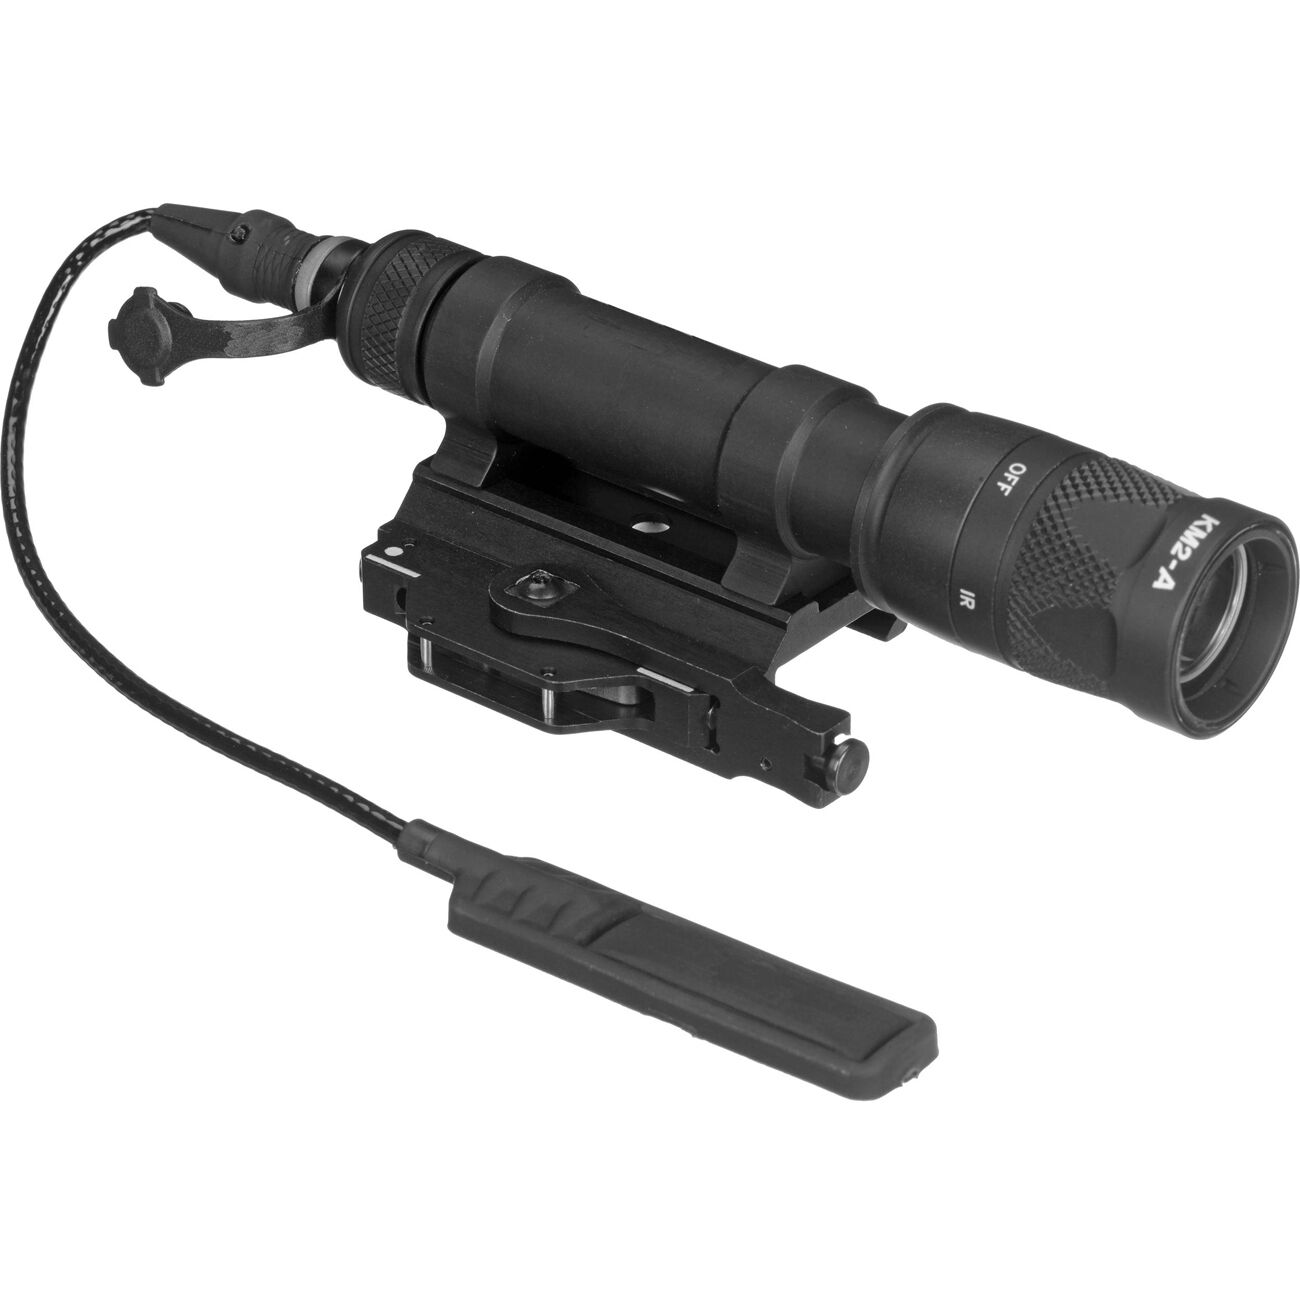 Scout Light Tactical LED Flashlight  M620V Strobe Weaponlight Hunting Mount Rifle  fair prices